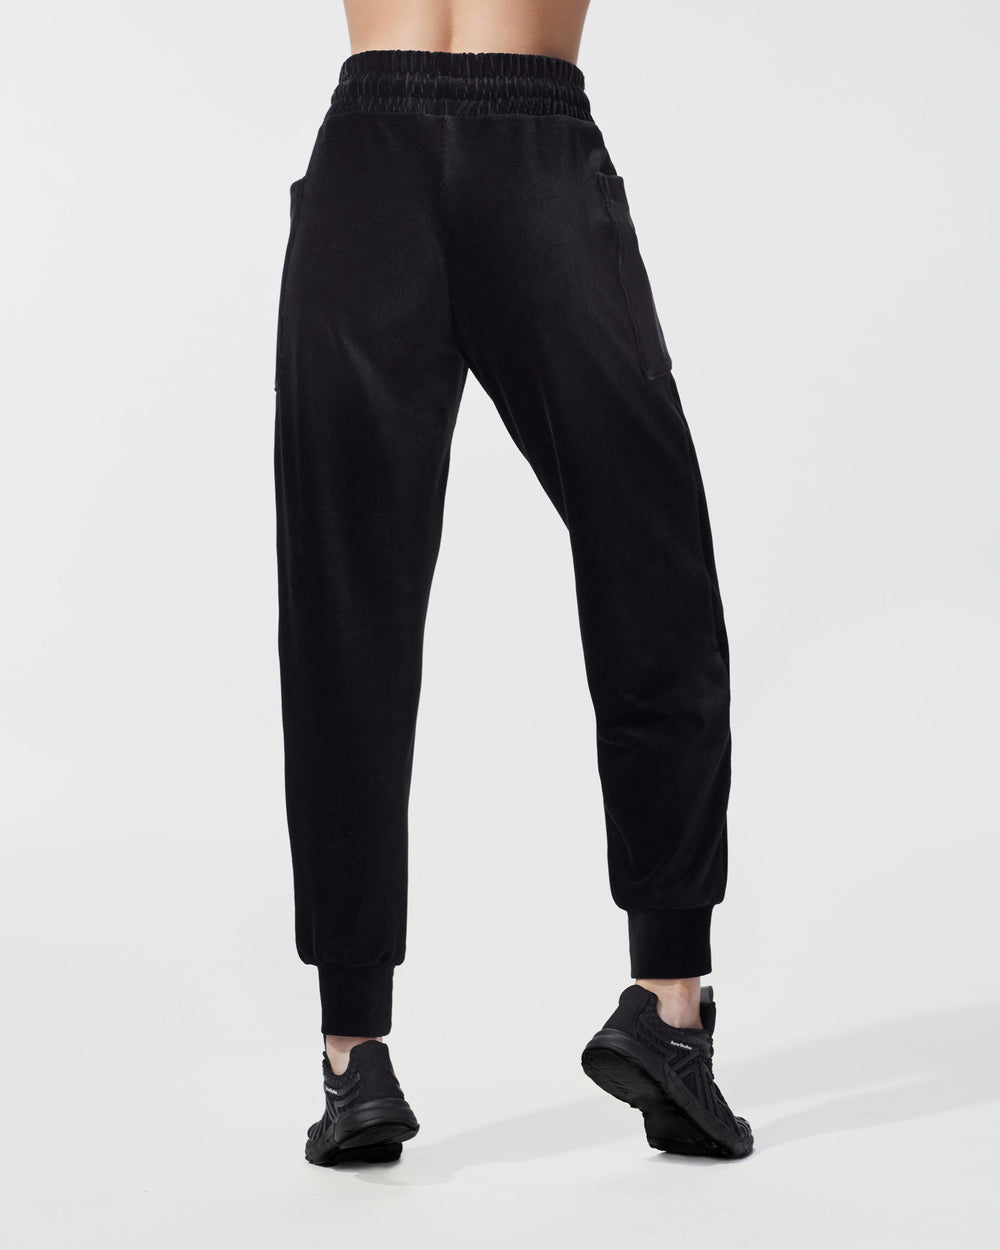 Hygge Ribbed Sweatpant - Black